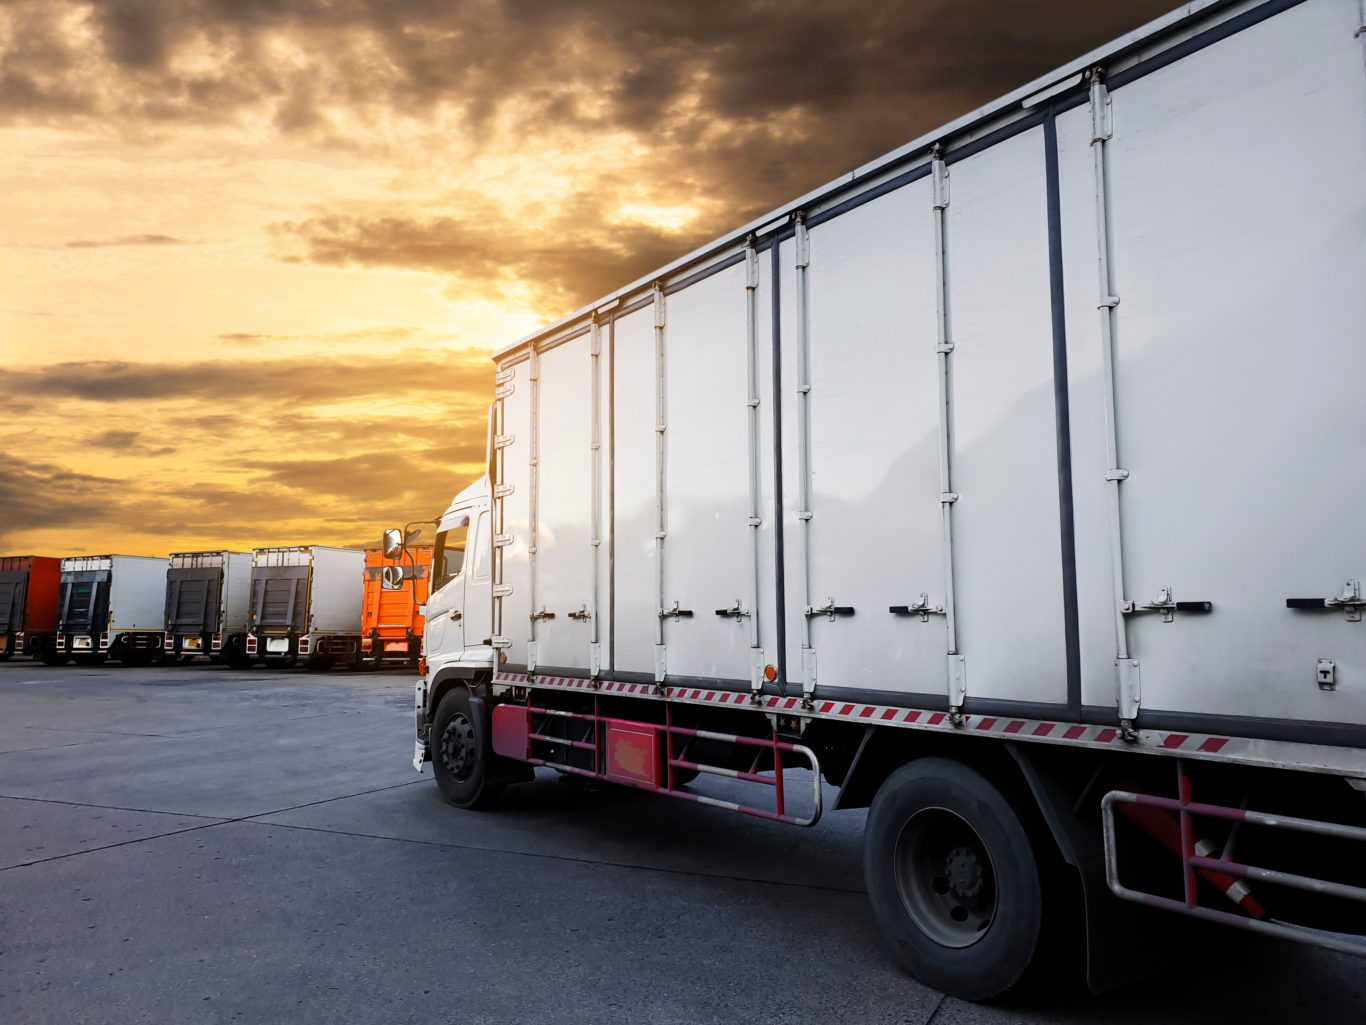 The Best Safe Driving Tips for Truck Drivers - Truck and Freight Information Online